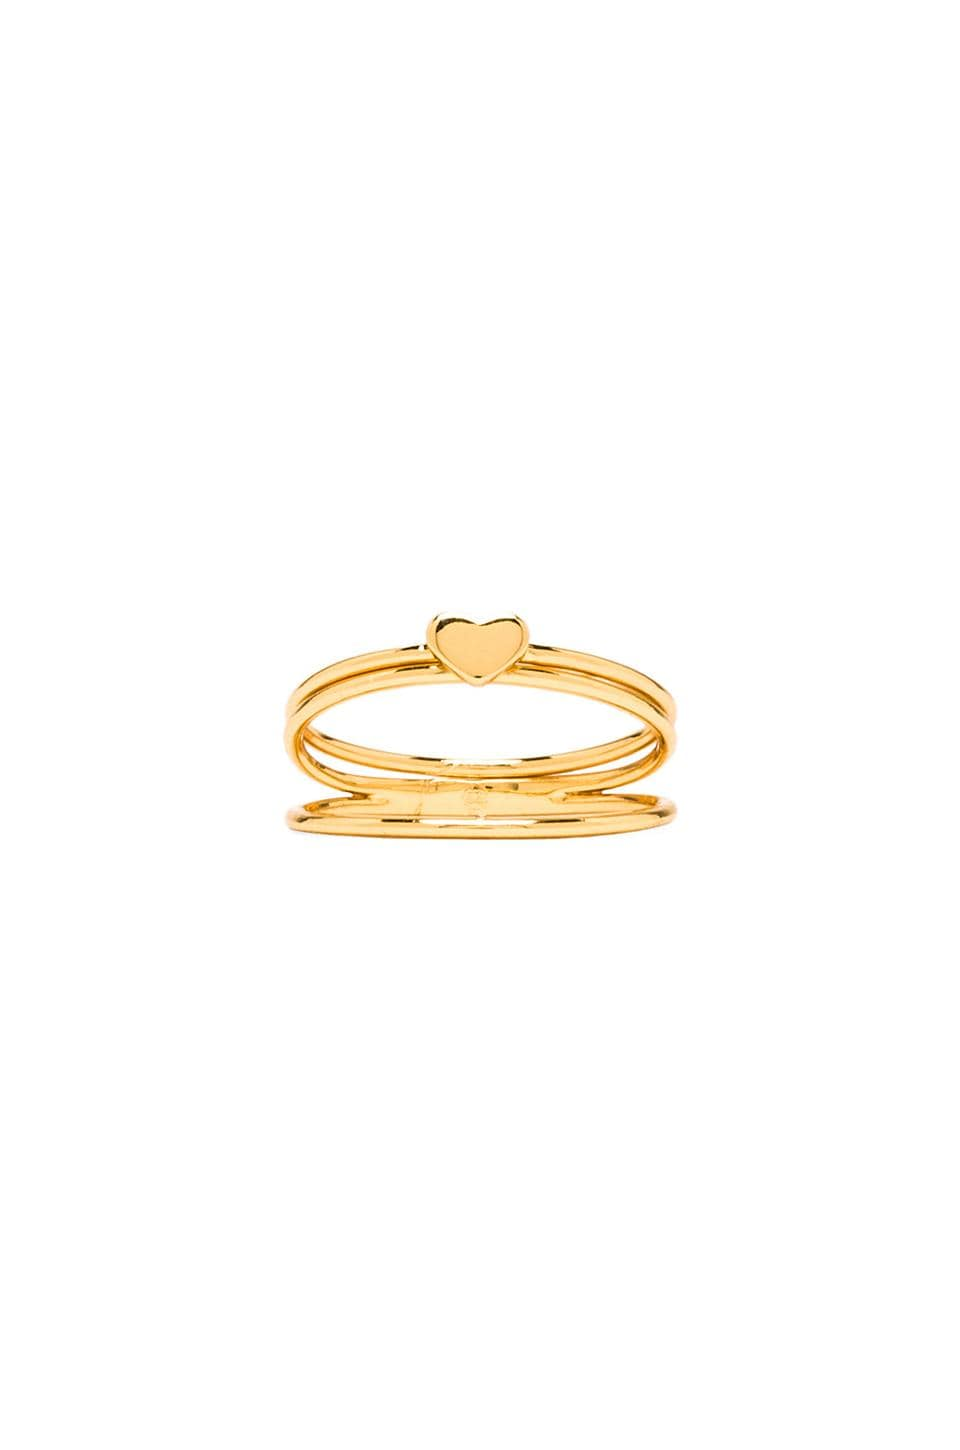 gorjana Carina Midi Ring in Gold